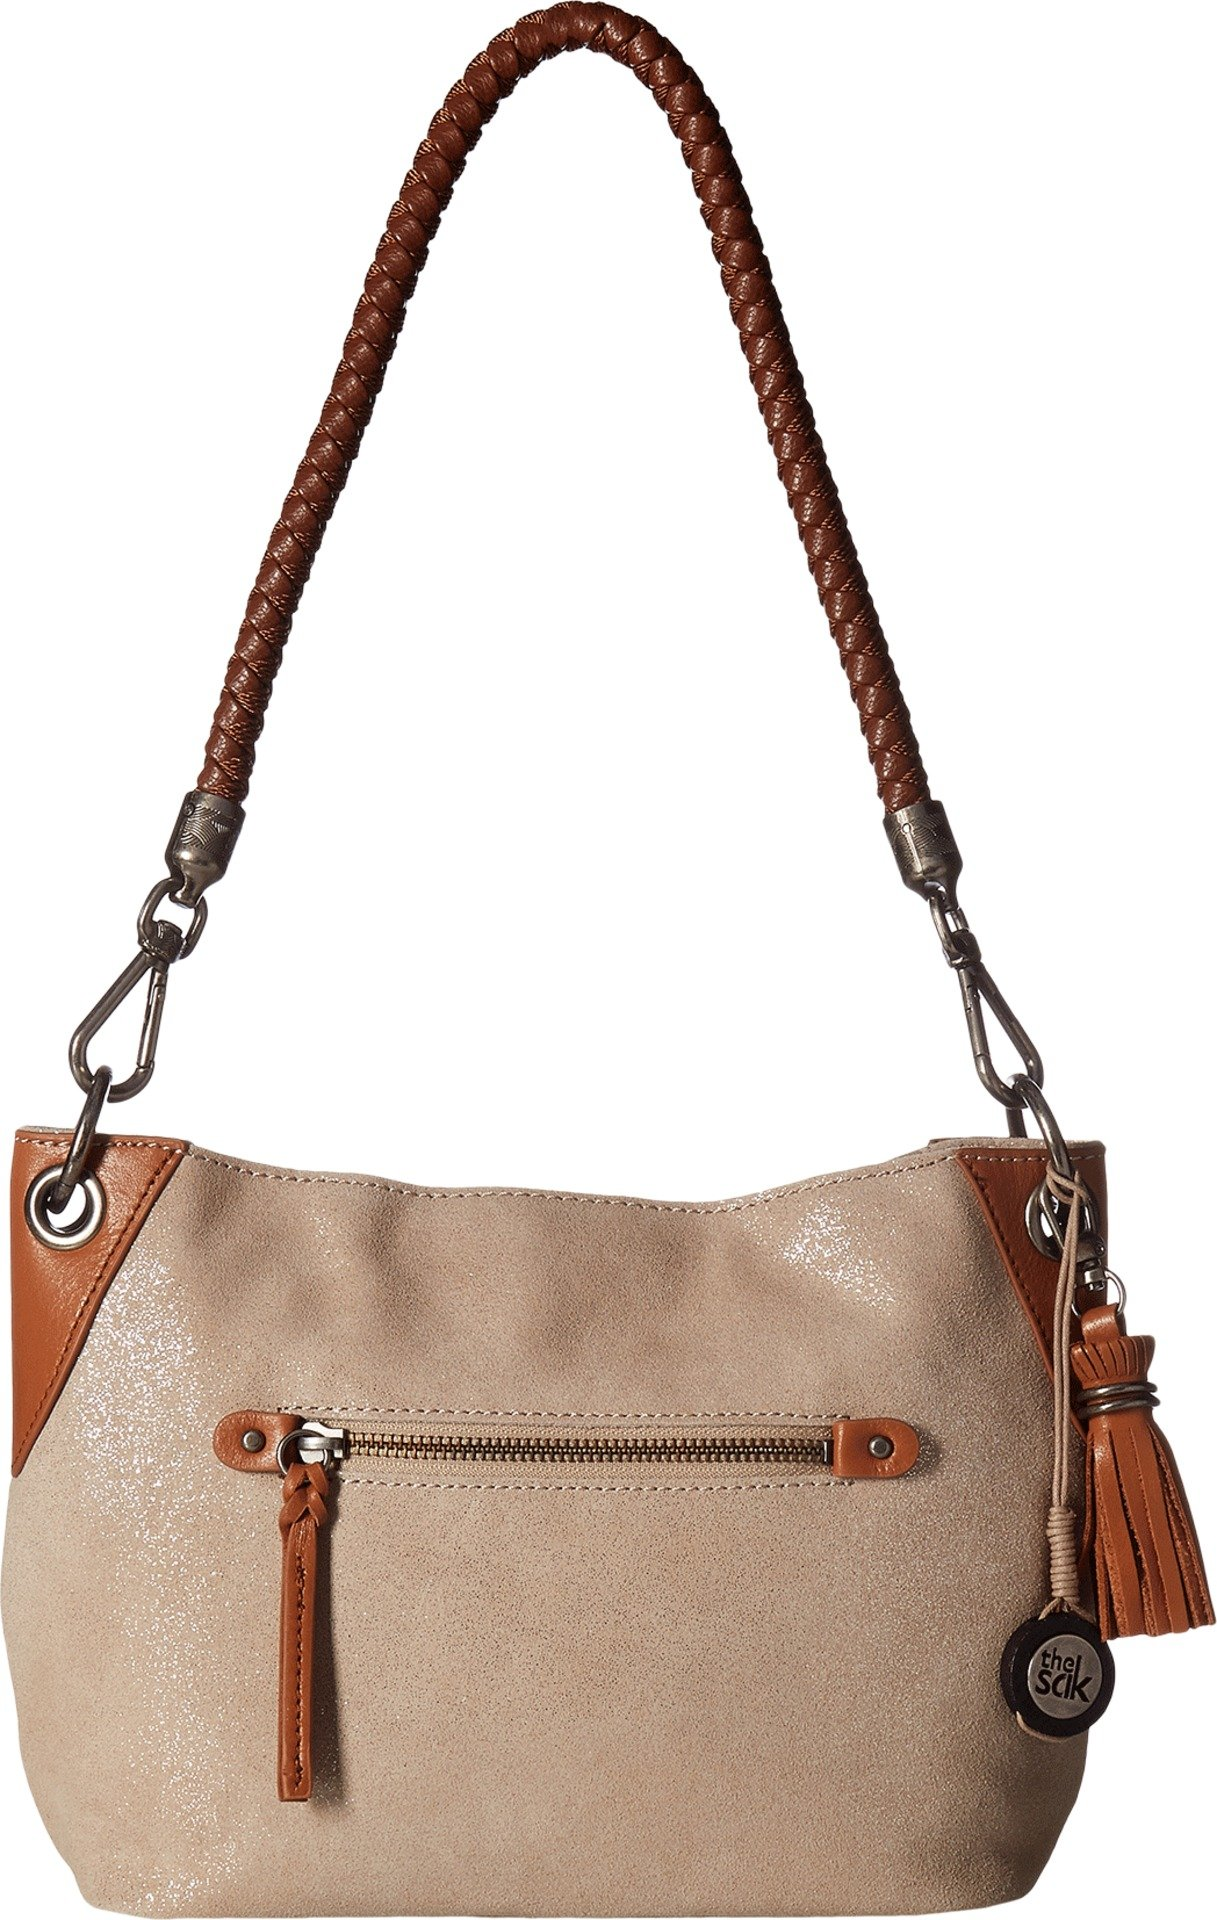 The Sak Women's Indio Leather Demi Nude Sparkle Handbag